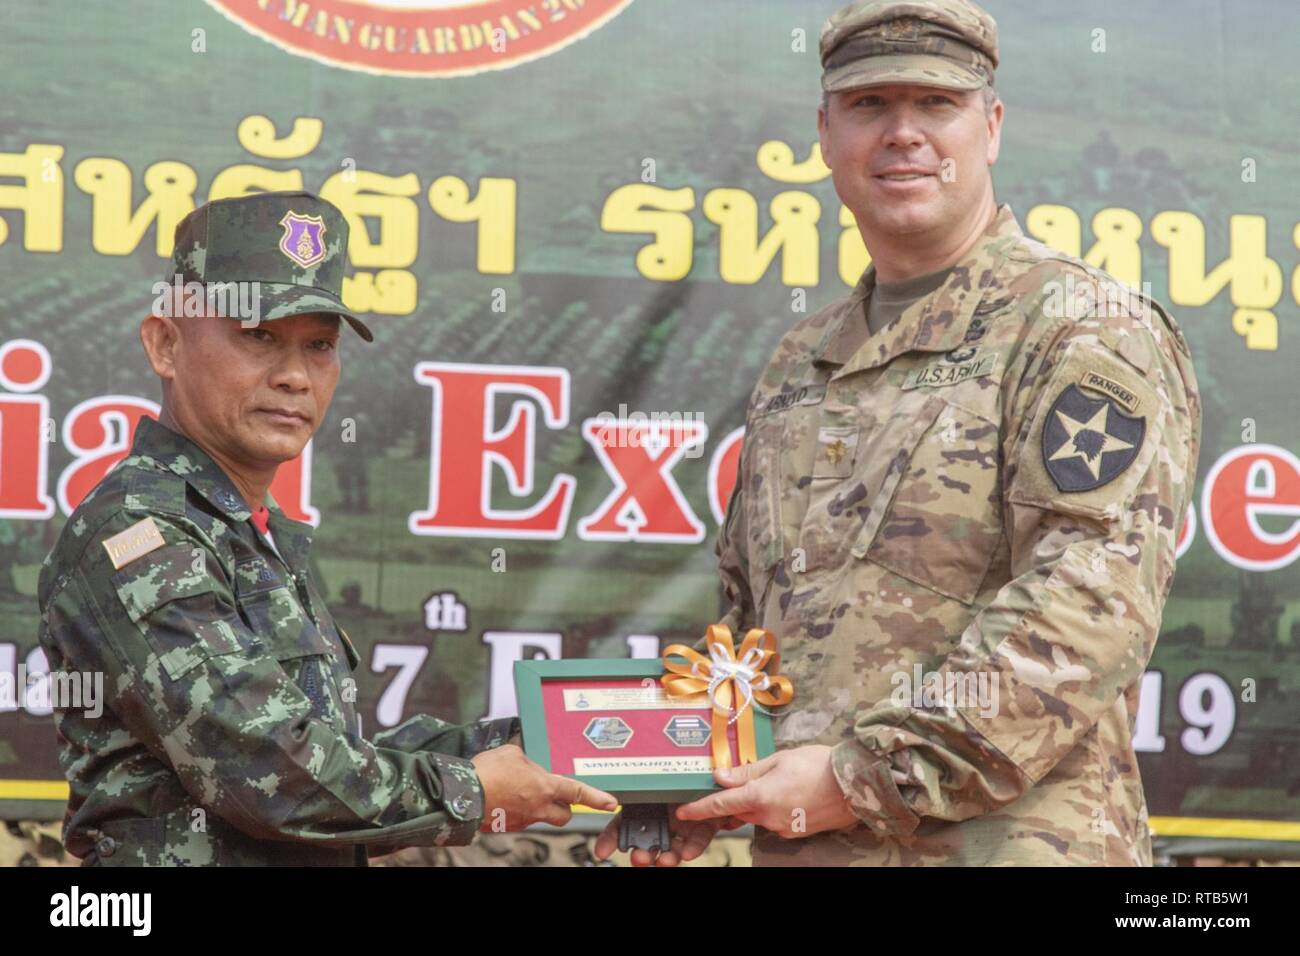 Craig Arnold, the executive officer for 5th Battalion, 20th Infantry Regiment, formally exchange gifts ...